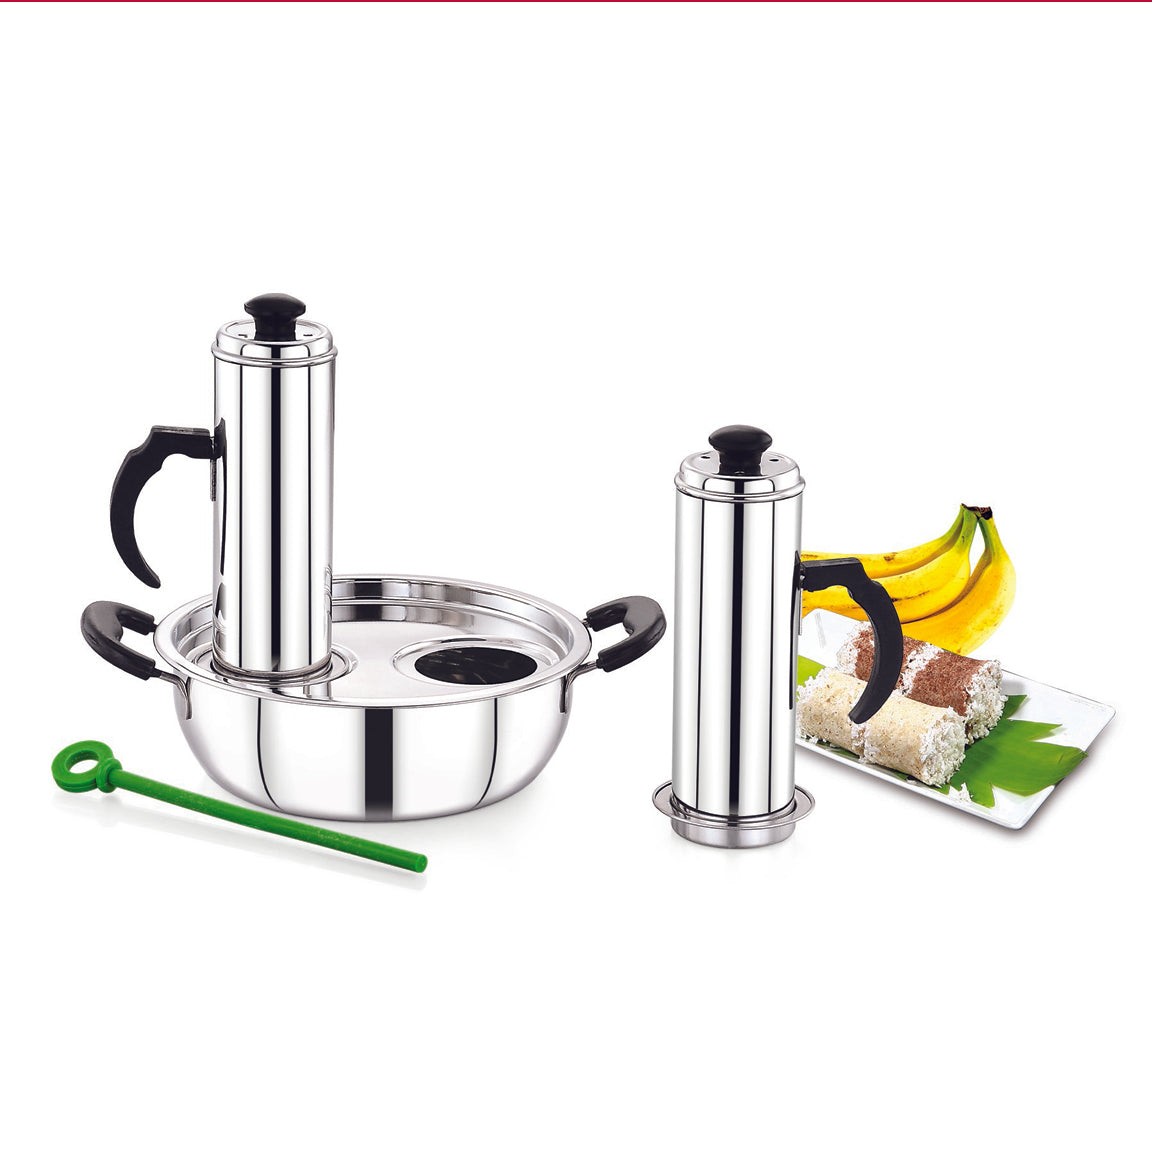 Royalford RF8503 Stainless Steel 3-in-1 Modern Puttu Solution